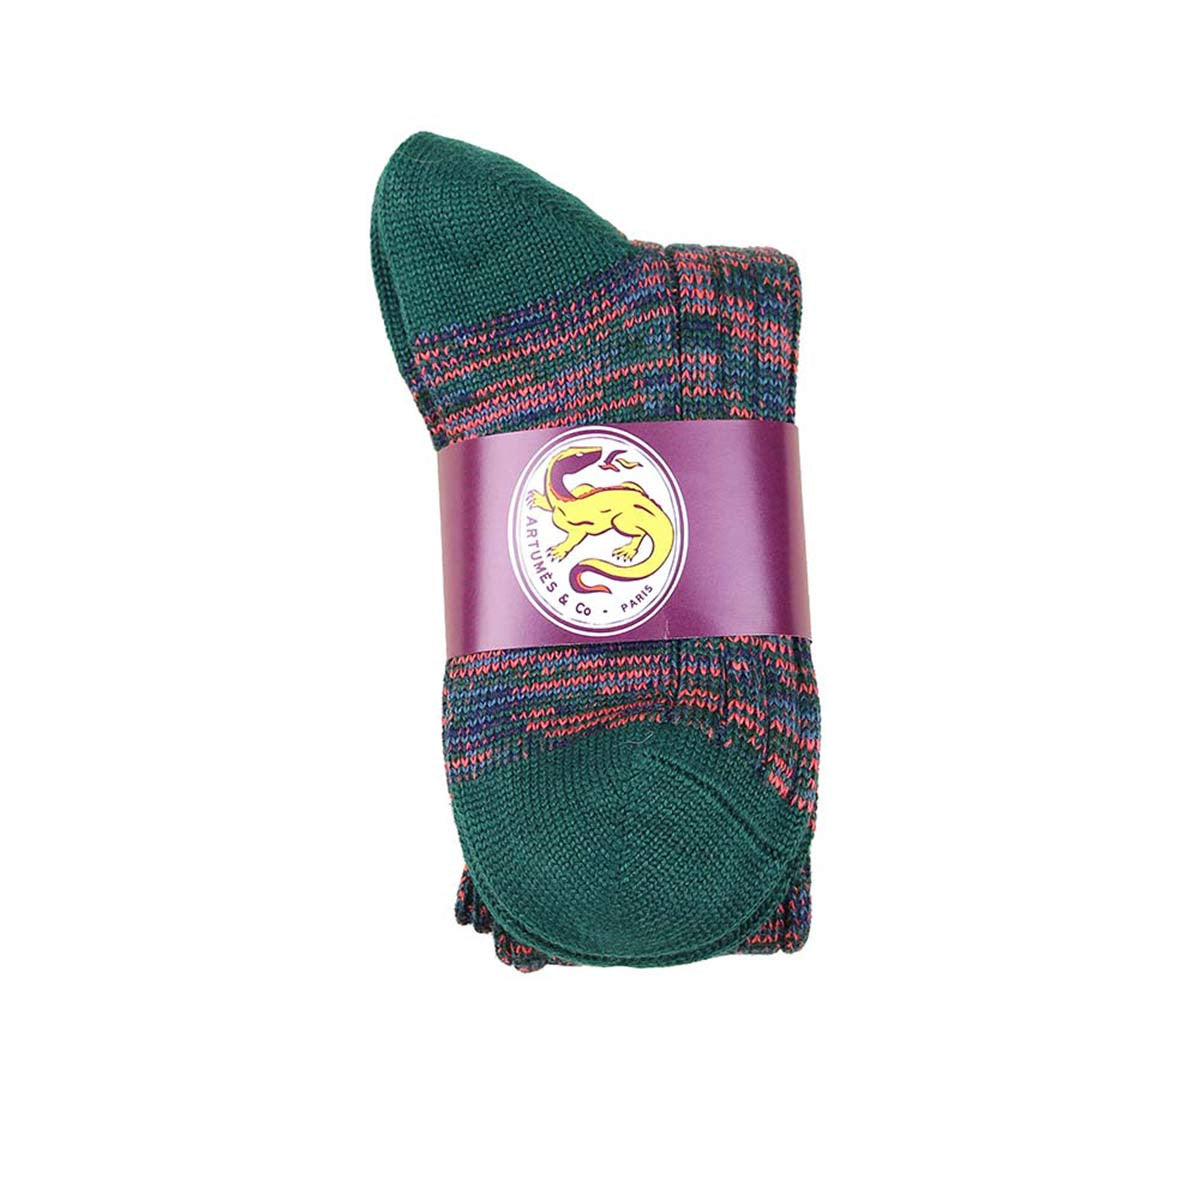 Chaussettes Galloway longues marine vert saumon